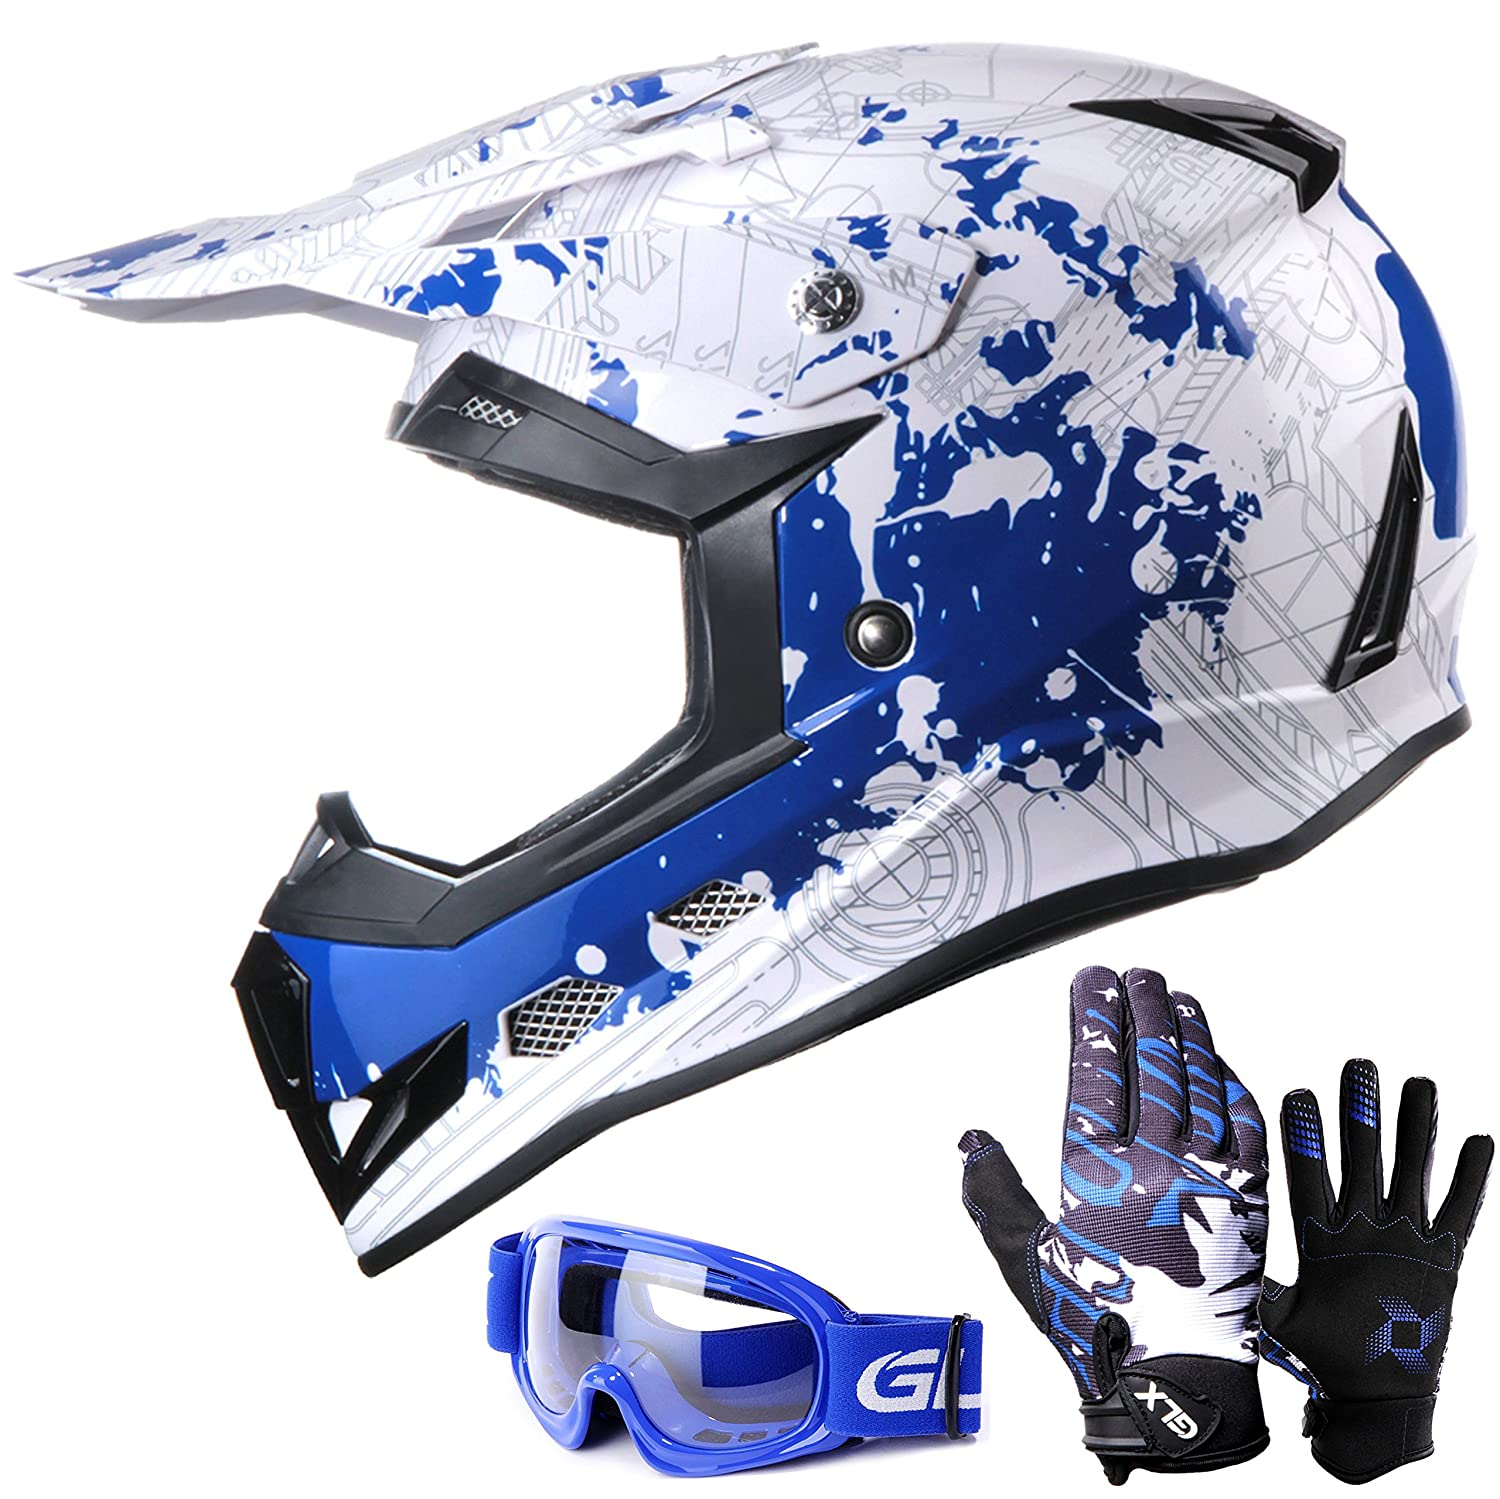 GLX GX623 youth & kids Motocross ATV Dirt Bike Helmet Kit with Gloves & Goggles, DOT Certified (Large, Camouflage Green) Galaxy Helmets